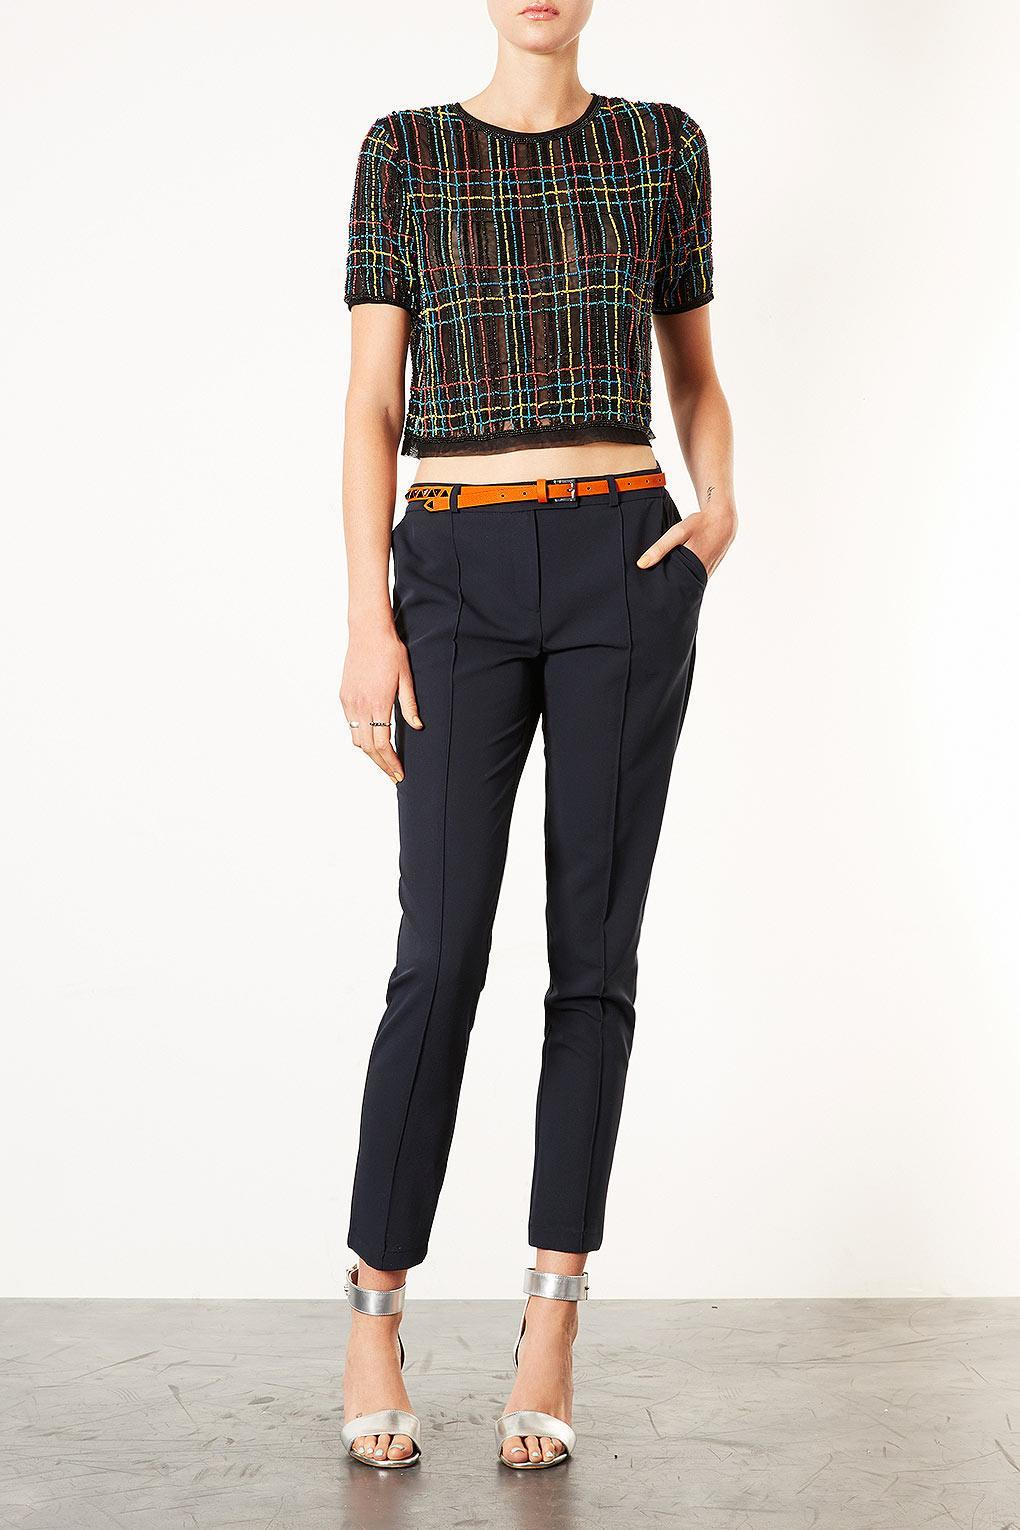 Ladies Belts for trousers